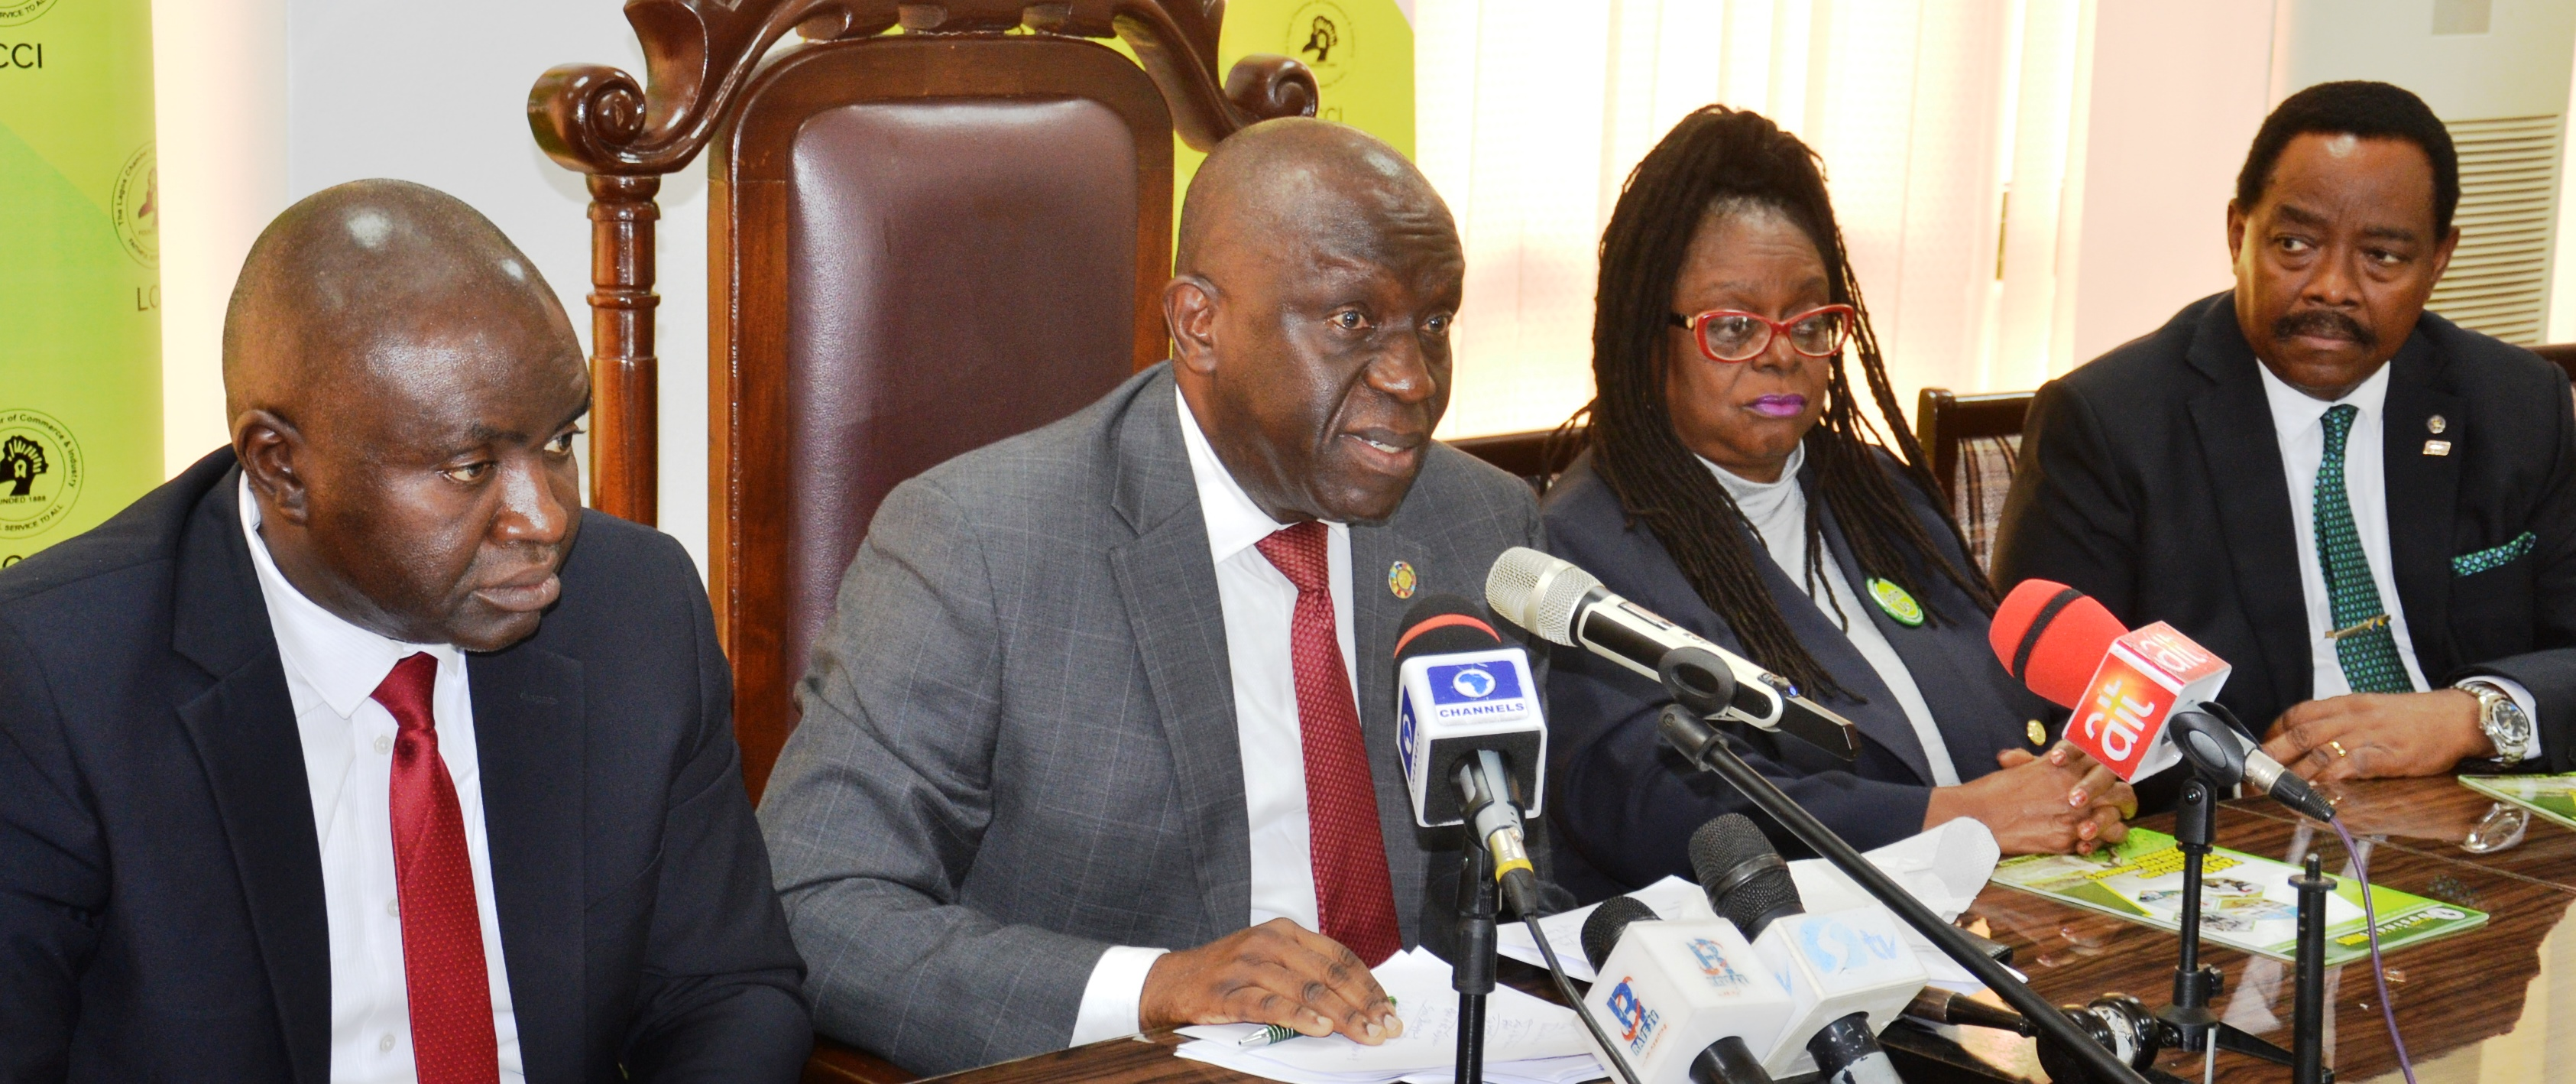 LCCI releases 2019 Economic Review, outlook for 2020